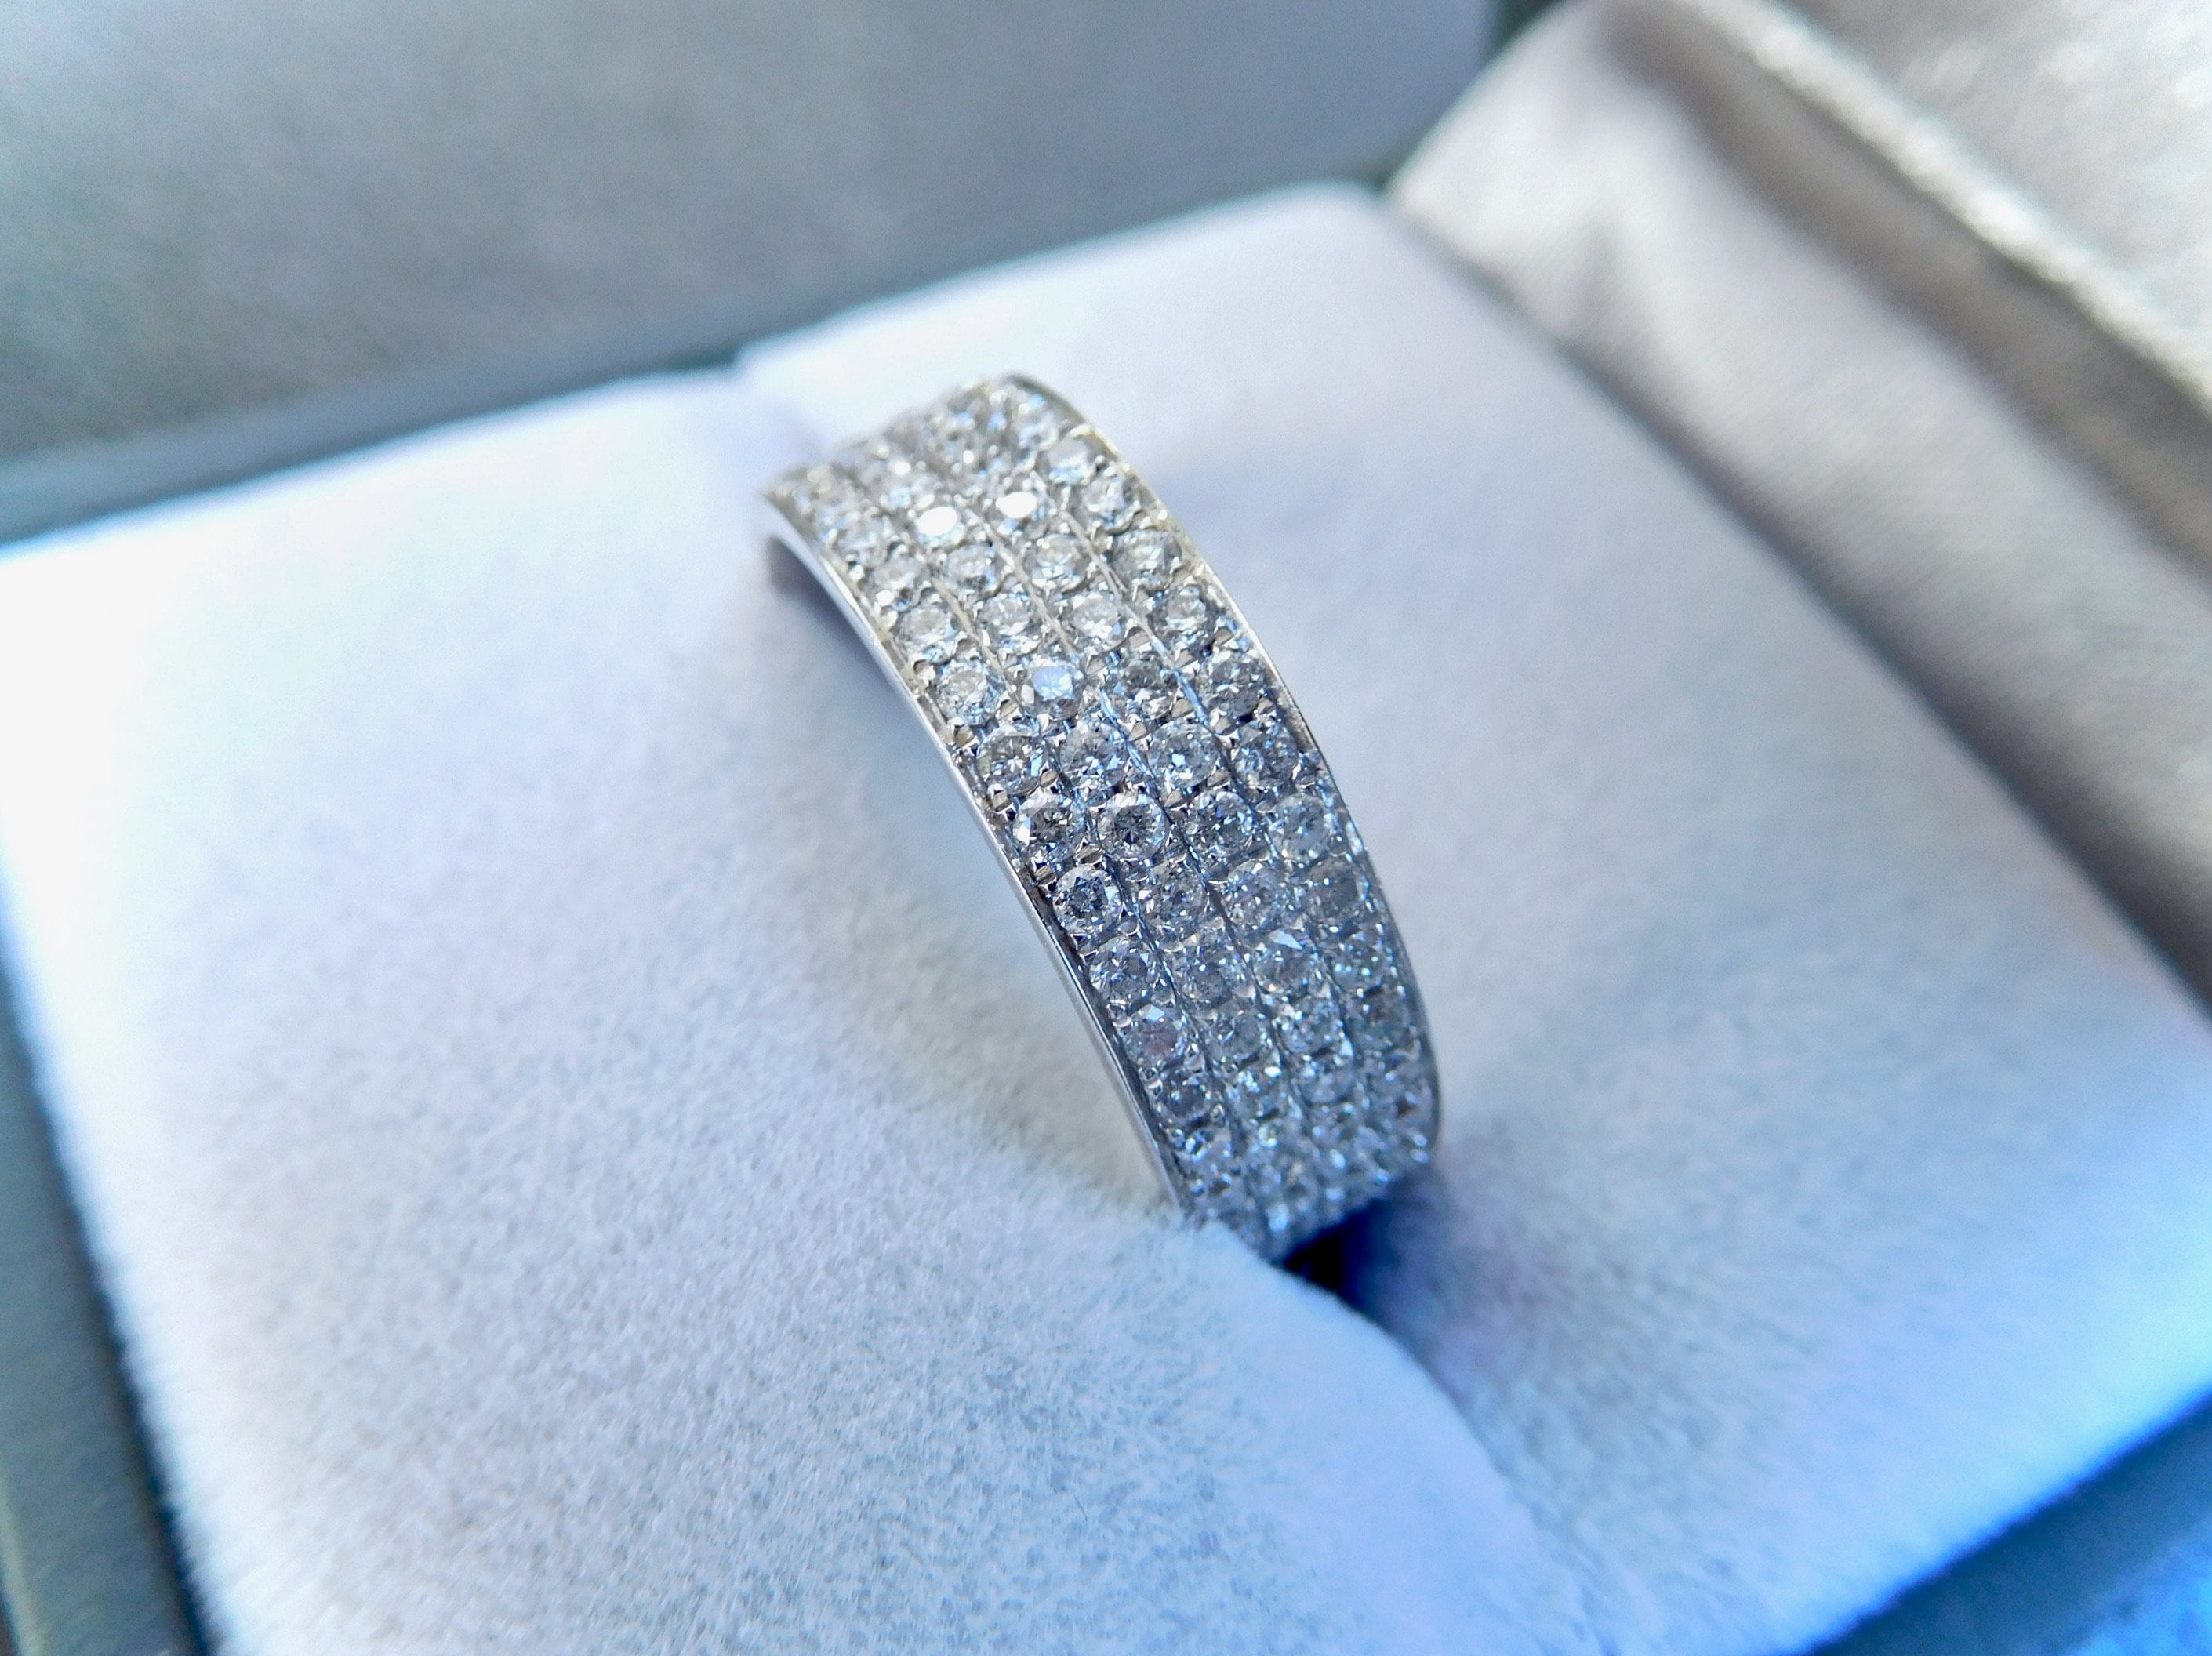 It is a graphic of 45ct white gold and diamond band, diamond eternity ring, thick